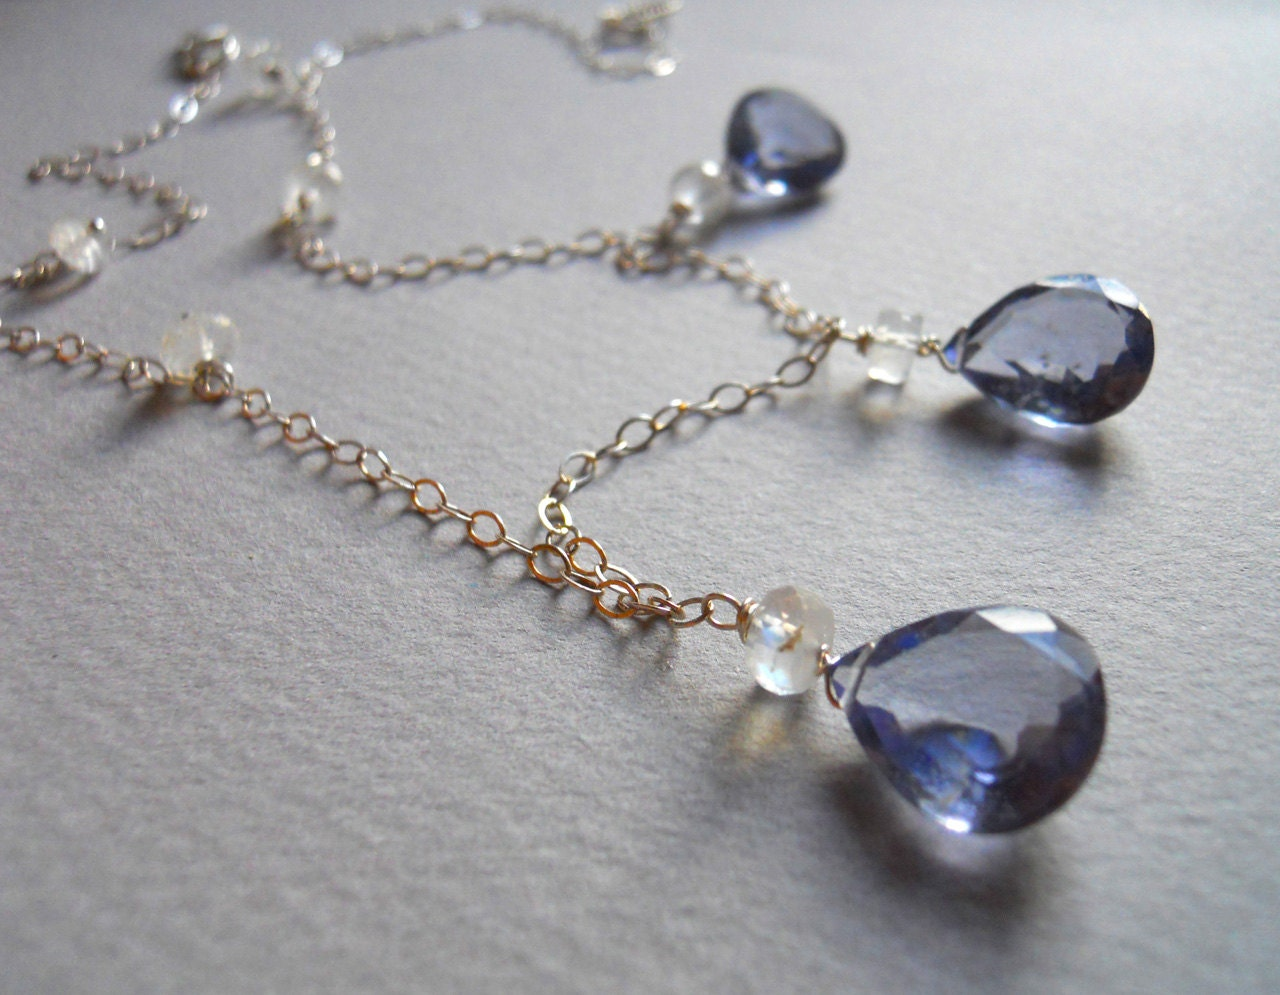 SALE was 122 now 98 Silvery Moon Necklace Moonstone and Rare Ceylon AAA blue quartz - $98.00 USD